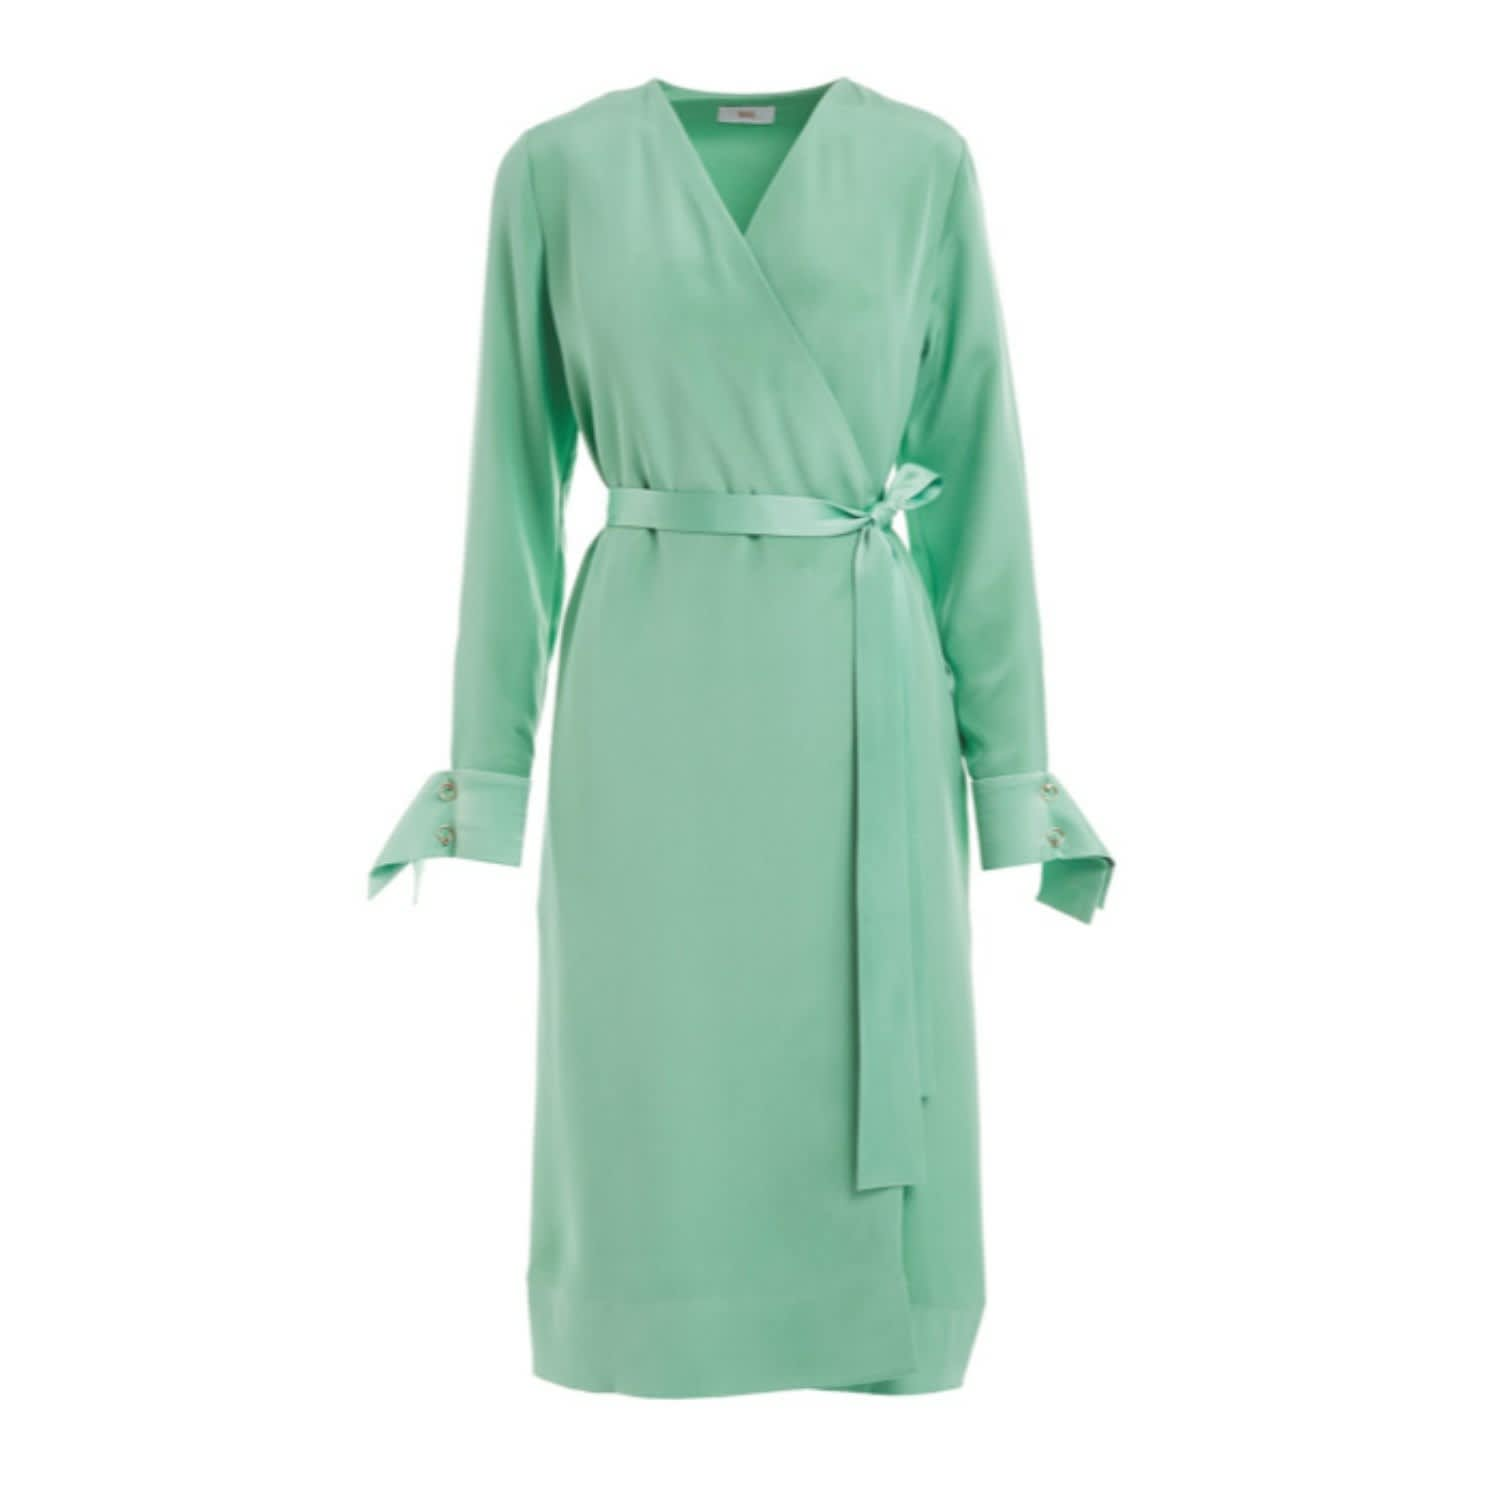 5ff84c1b50547 Peregrine Mint Green Silk Wrap Midi Dress